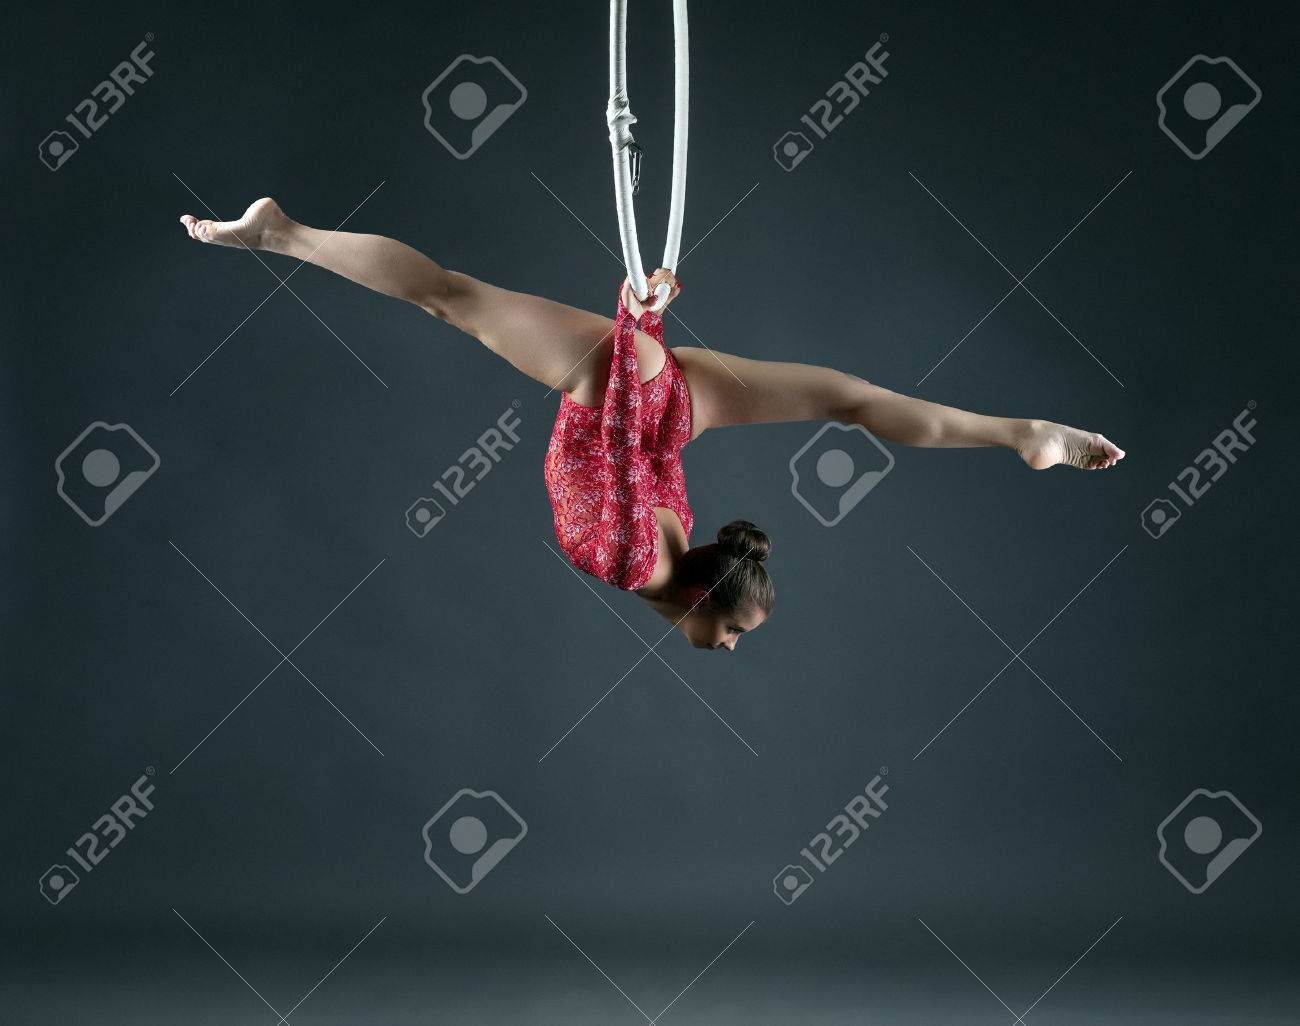 Flexible girl performs trick with hanging hoop, on gray background - 41653854